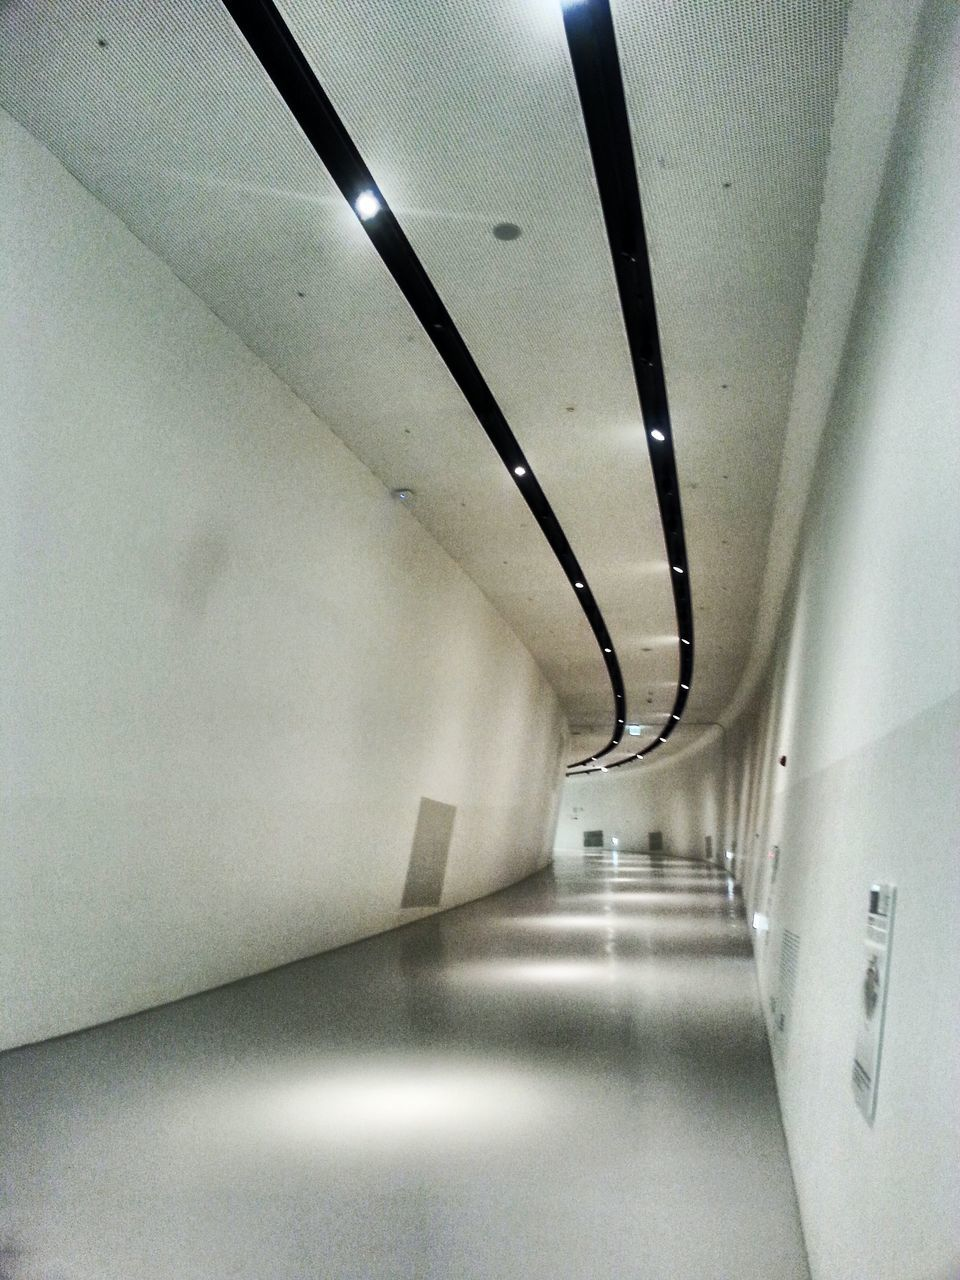 empty, the way forward, indoors, ceiling, illuminated, corridor, diminishing perspective, architecture, absence, no people, built structure, day